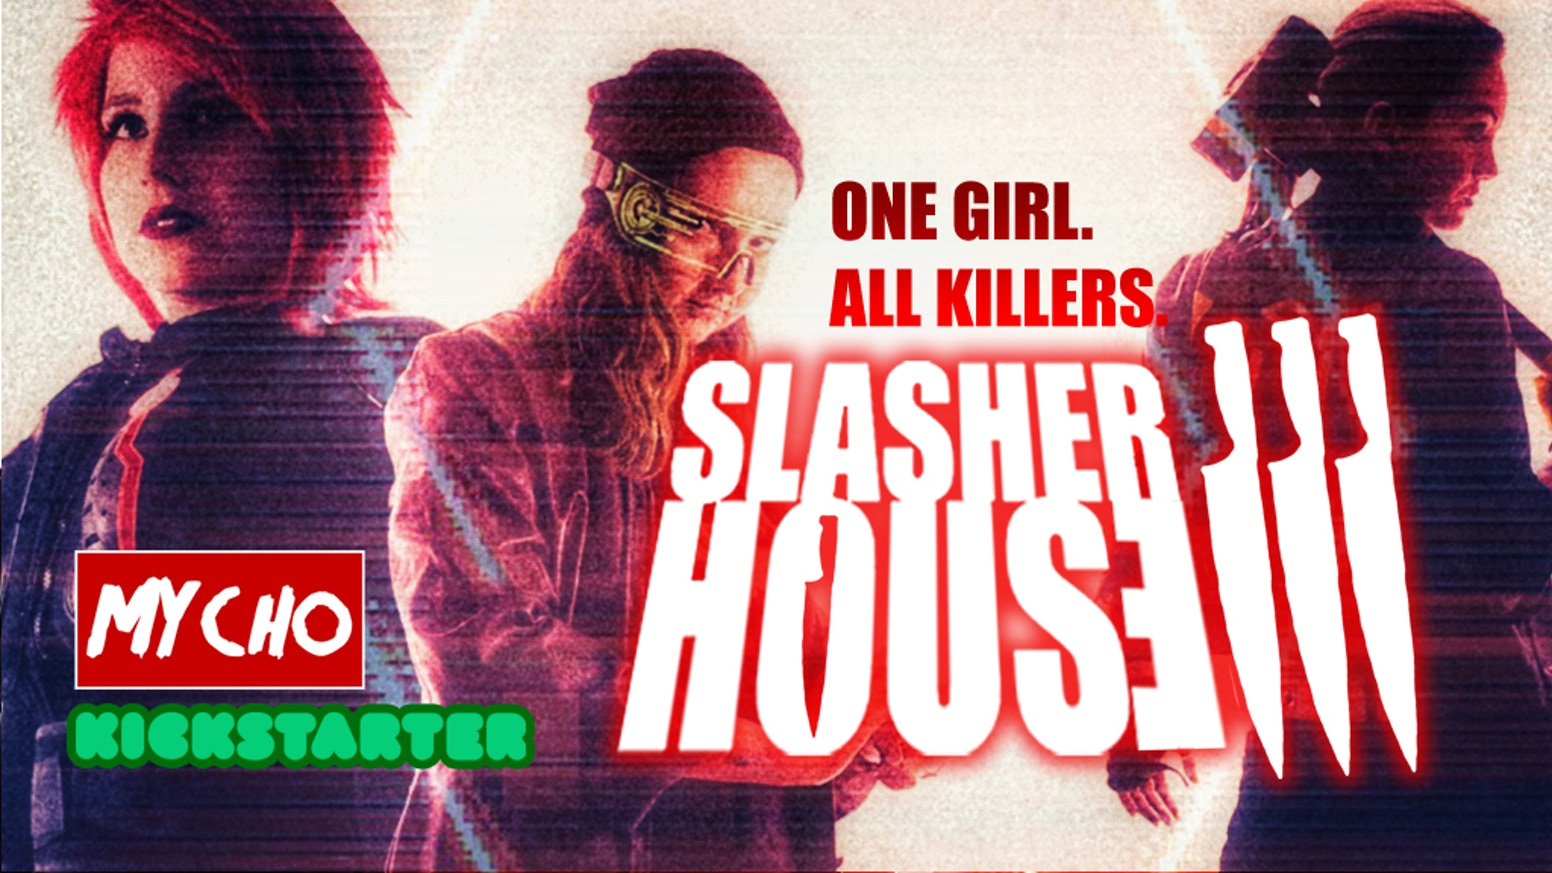 The final chapter in the Slasher House Saga.  An Action/Horror Hybrid with 25 KILLERS!!